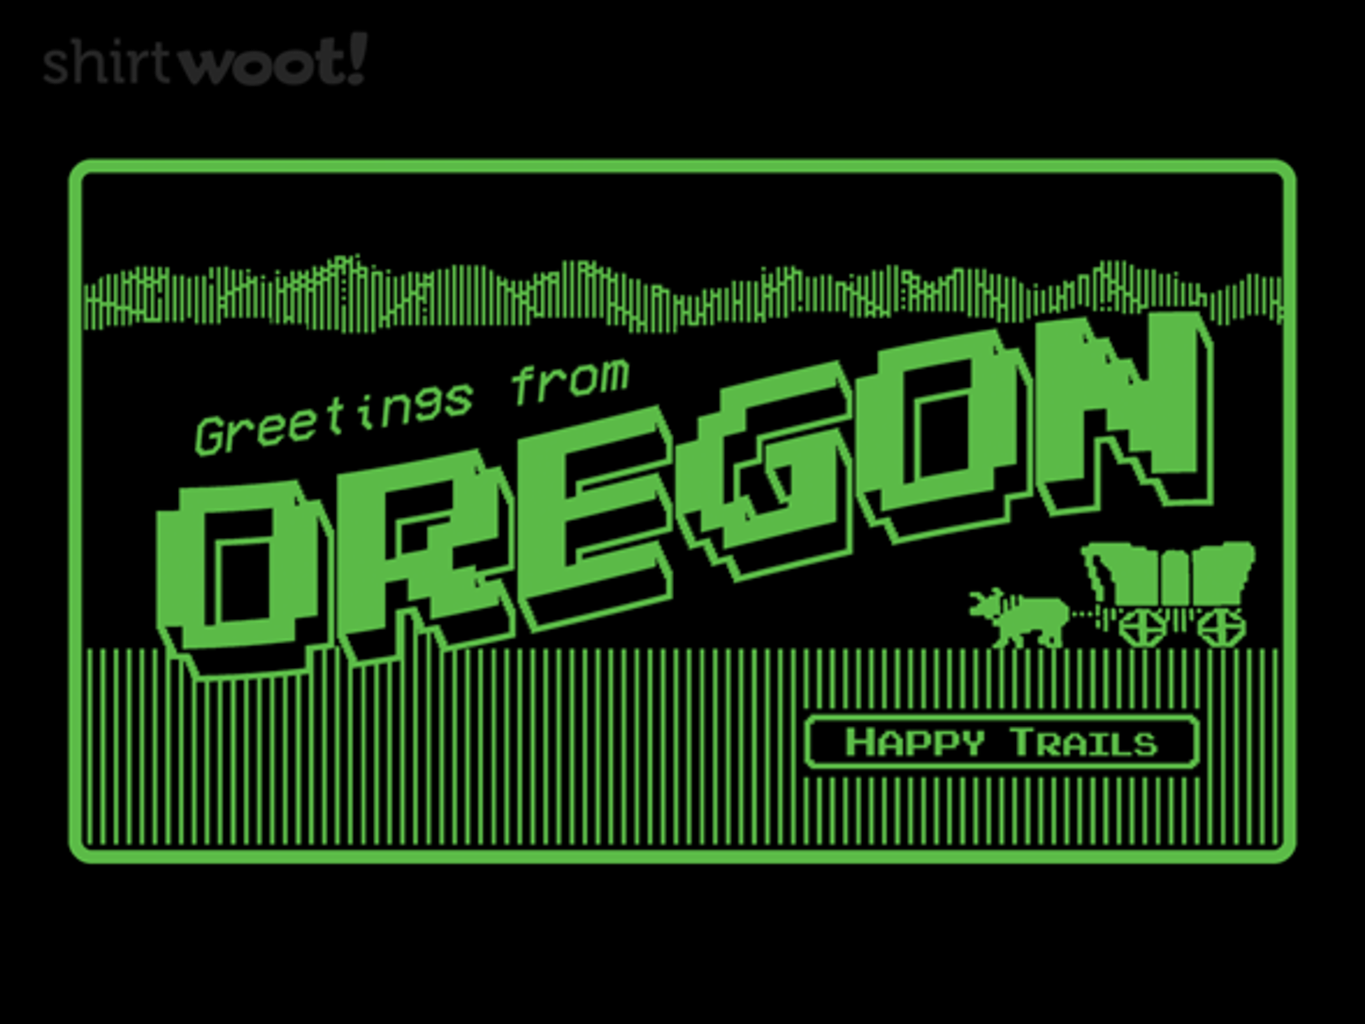 Woot!: Greetings from Oregon